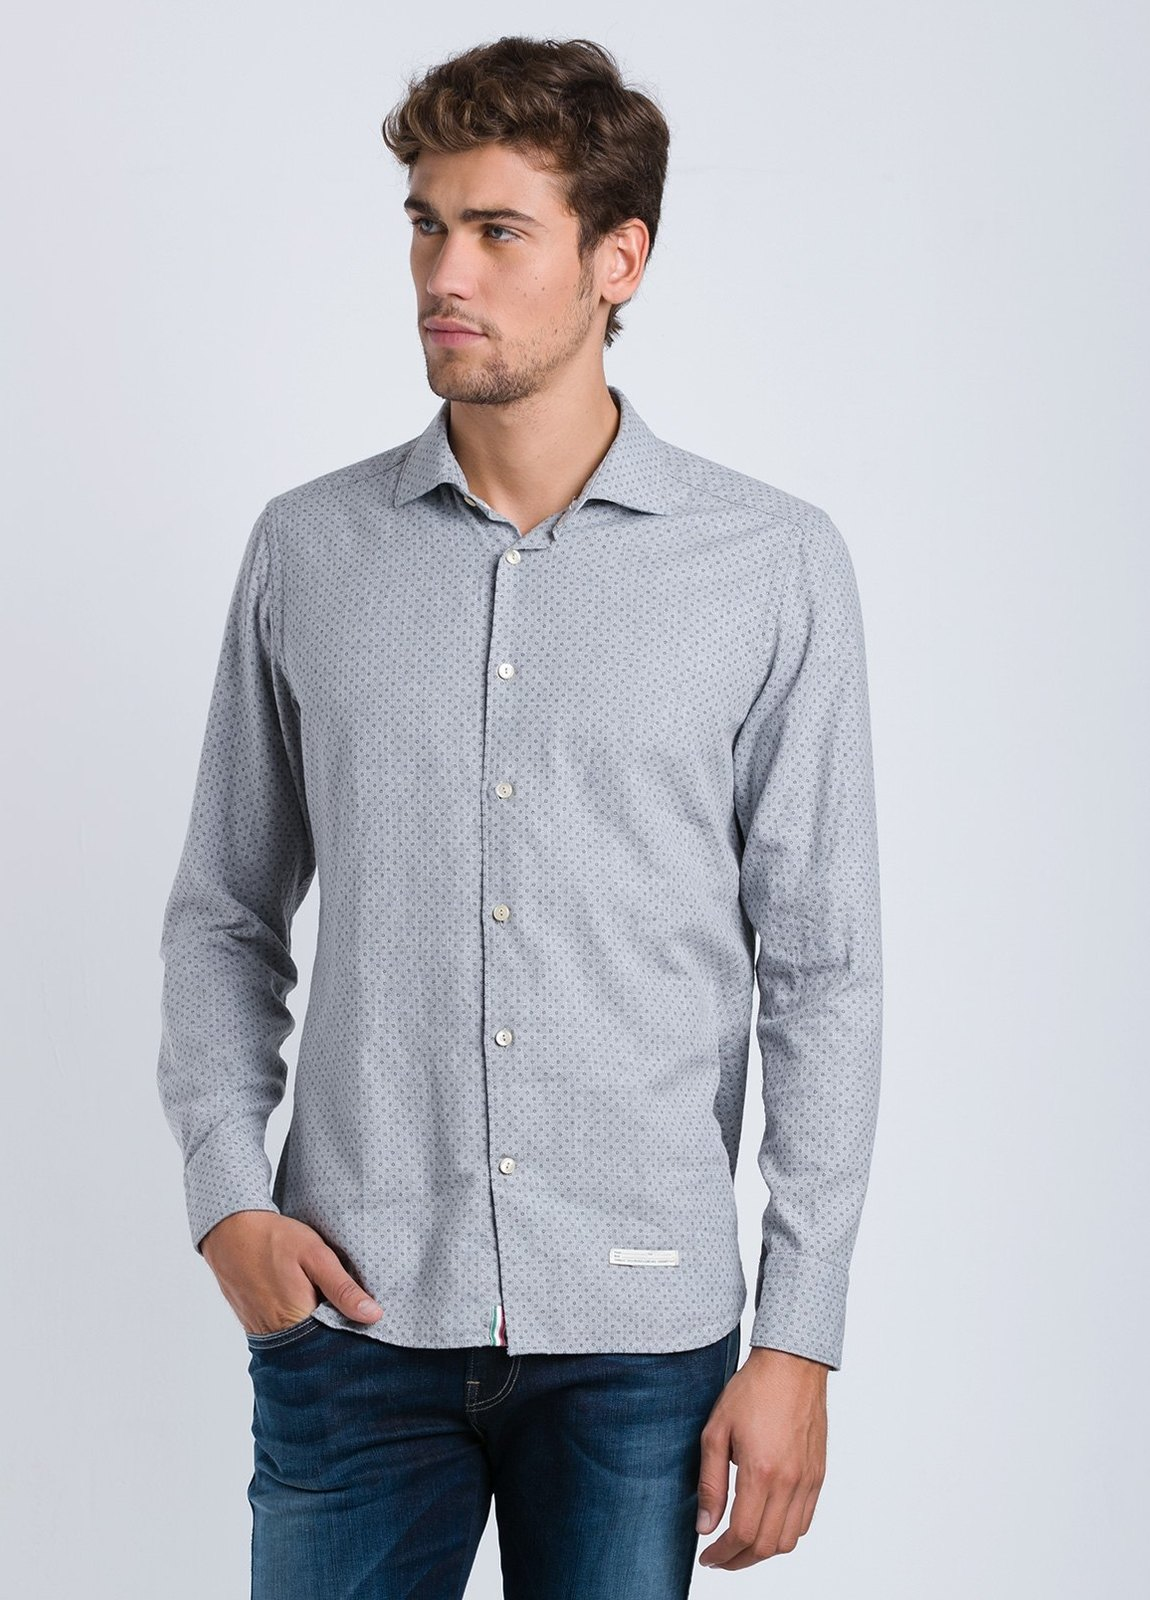 Camisa sport dibujo SLIM FIT color gris, 100% Algodón.